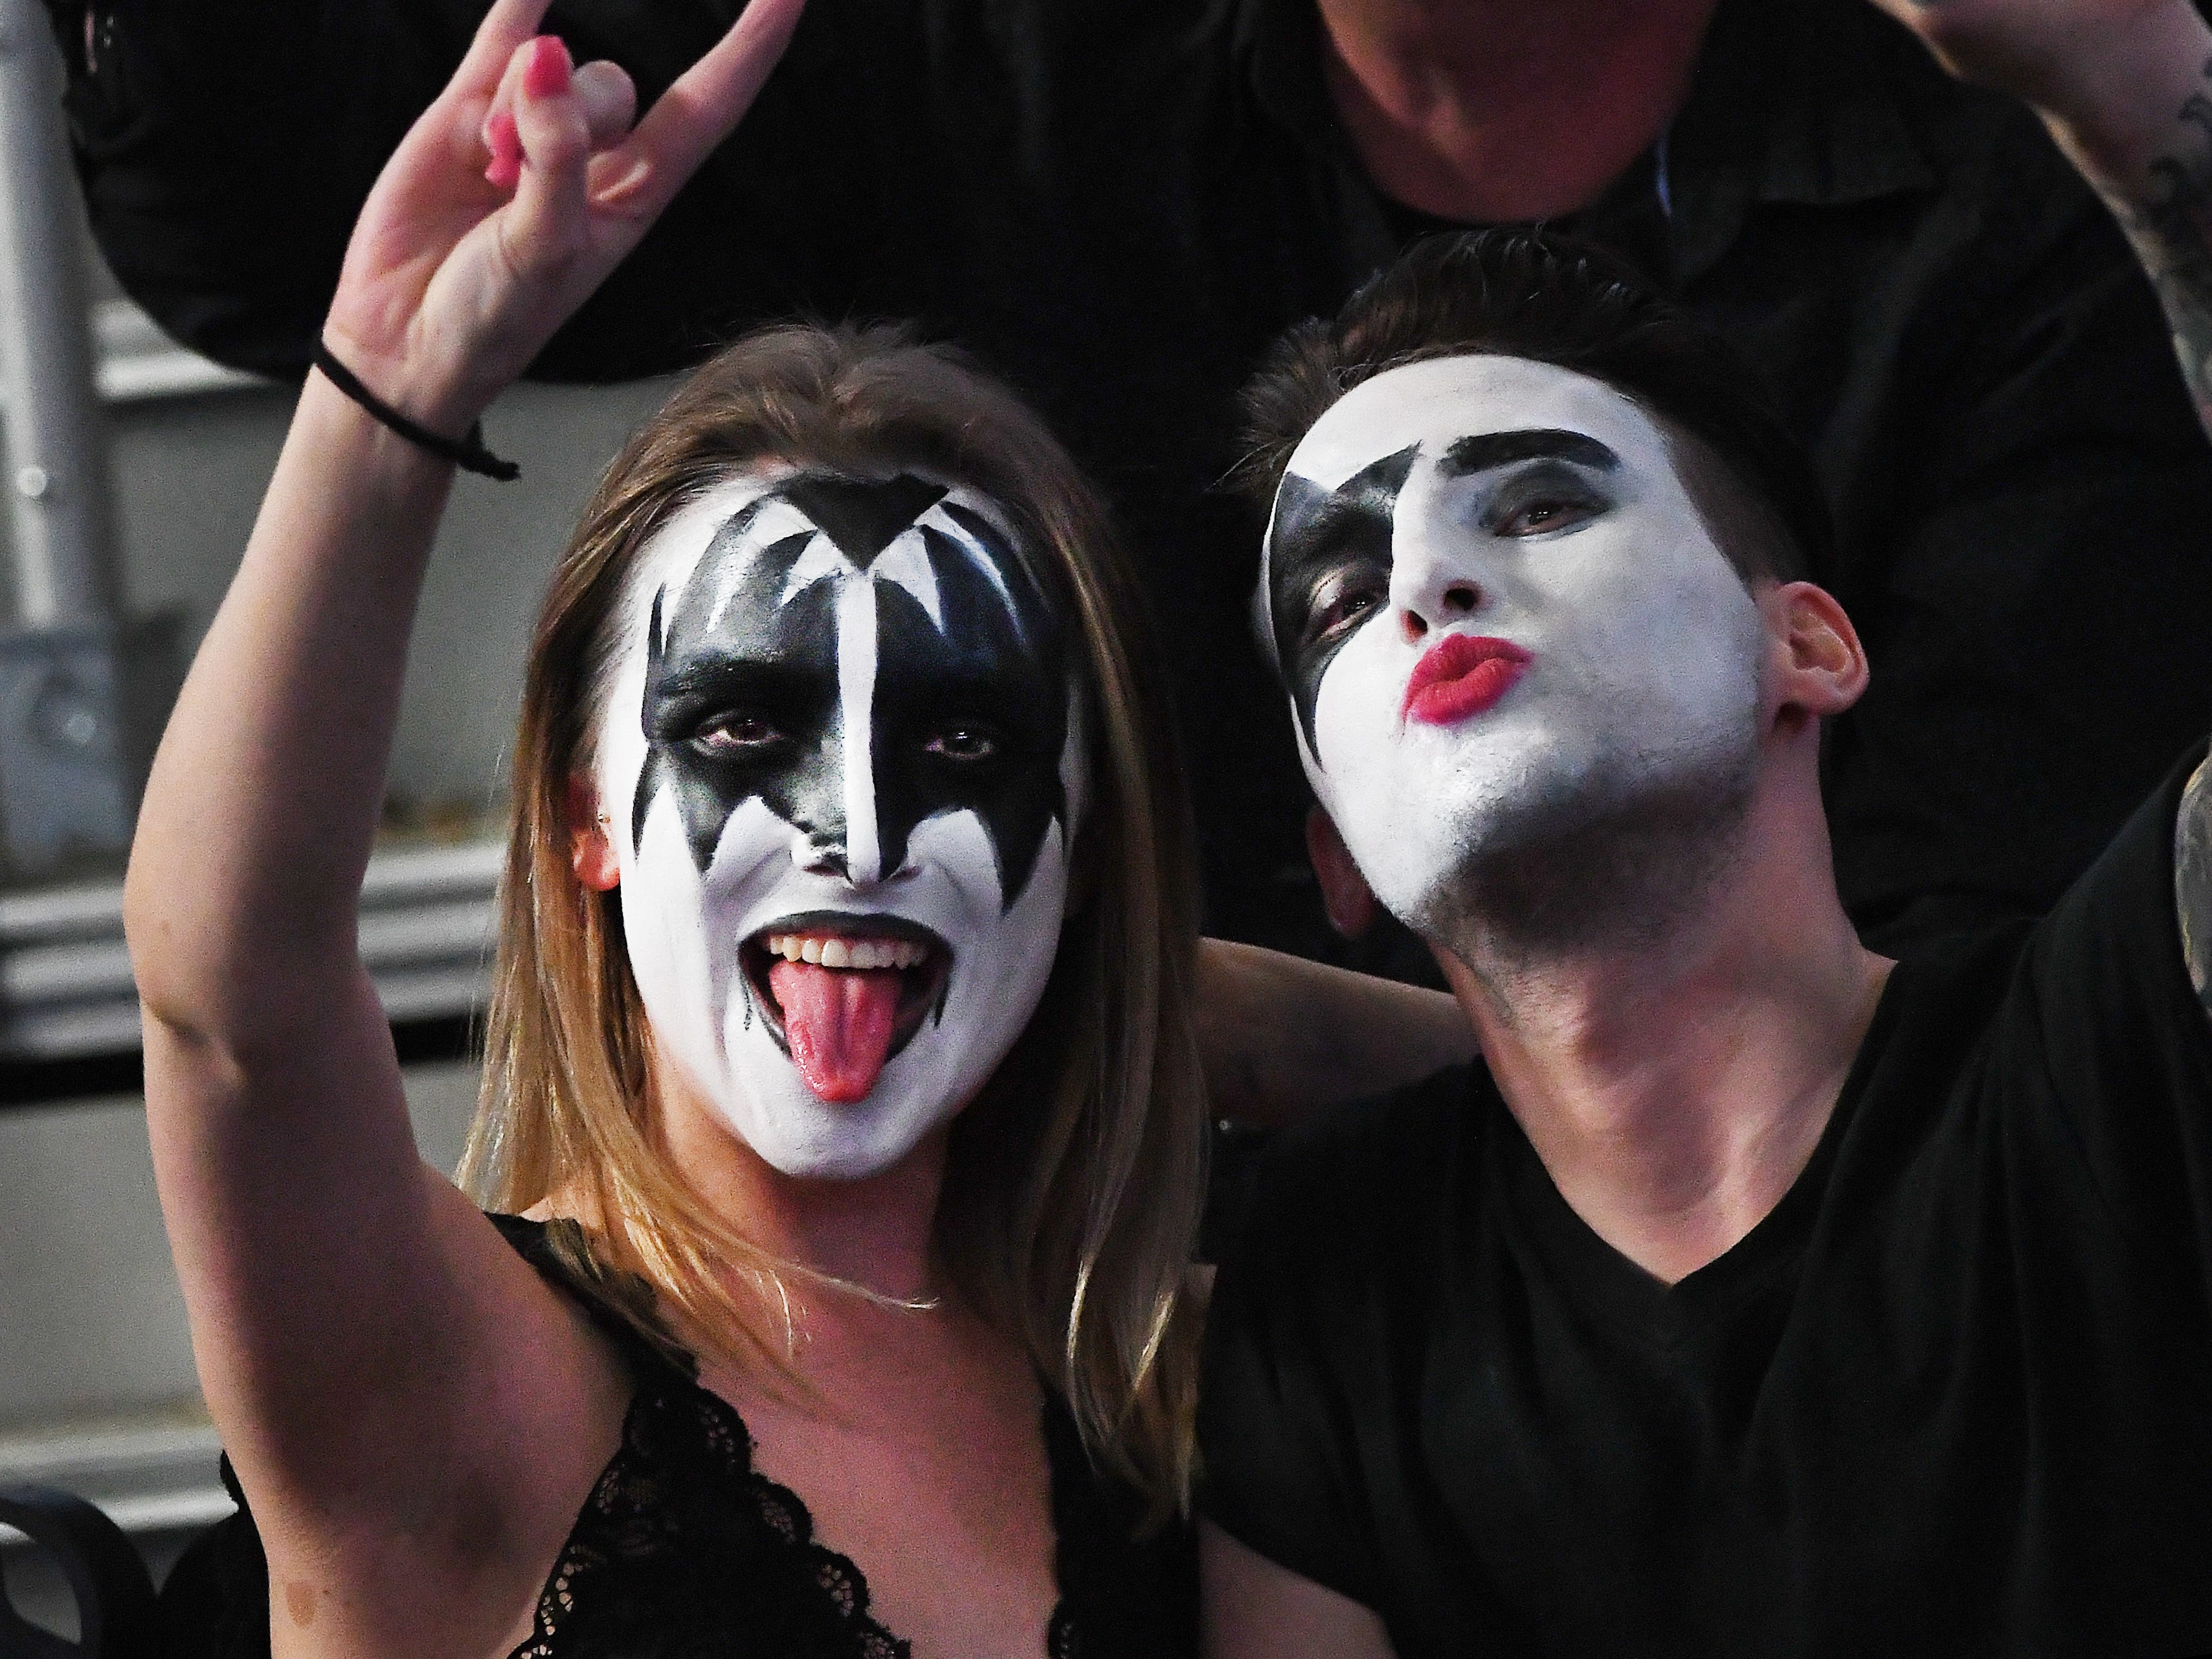 KISS fans wear their best makeup of their favorite members of the band, waiting for the start of the concert.